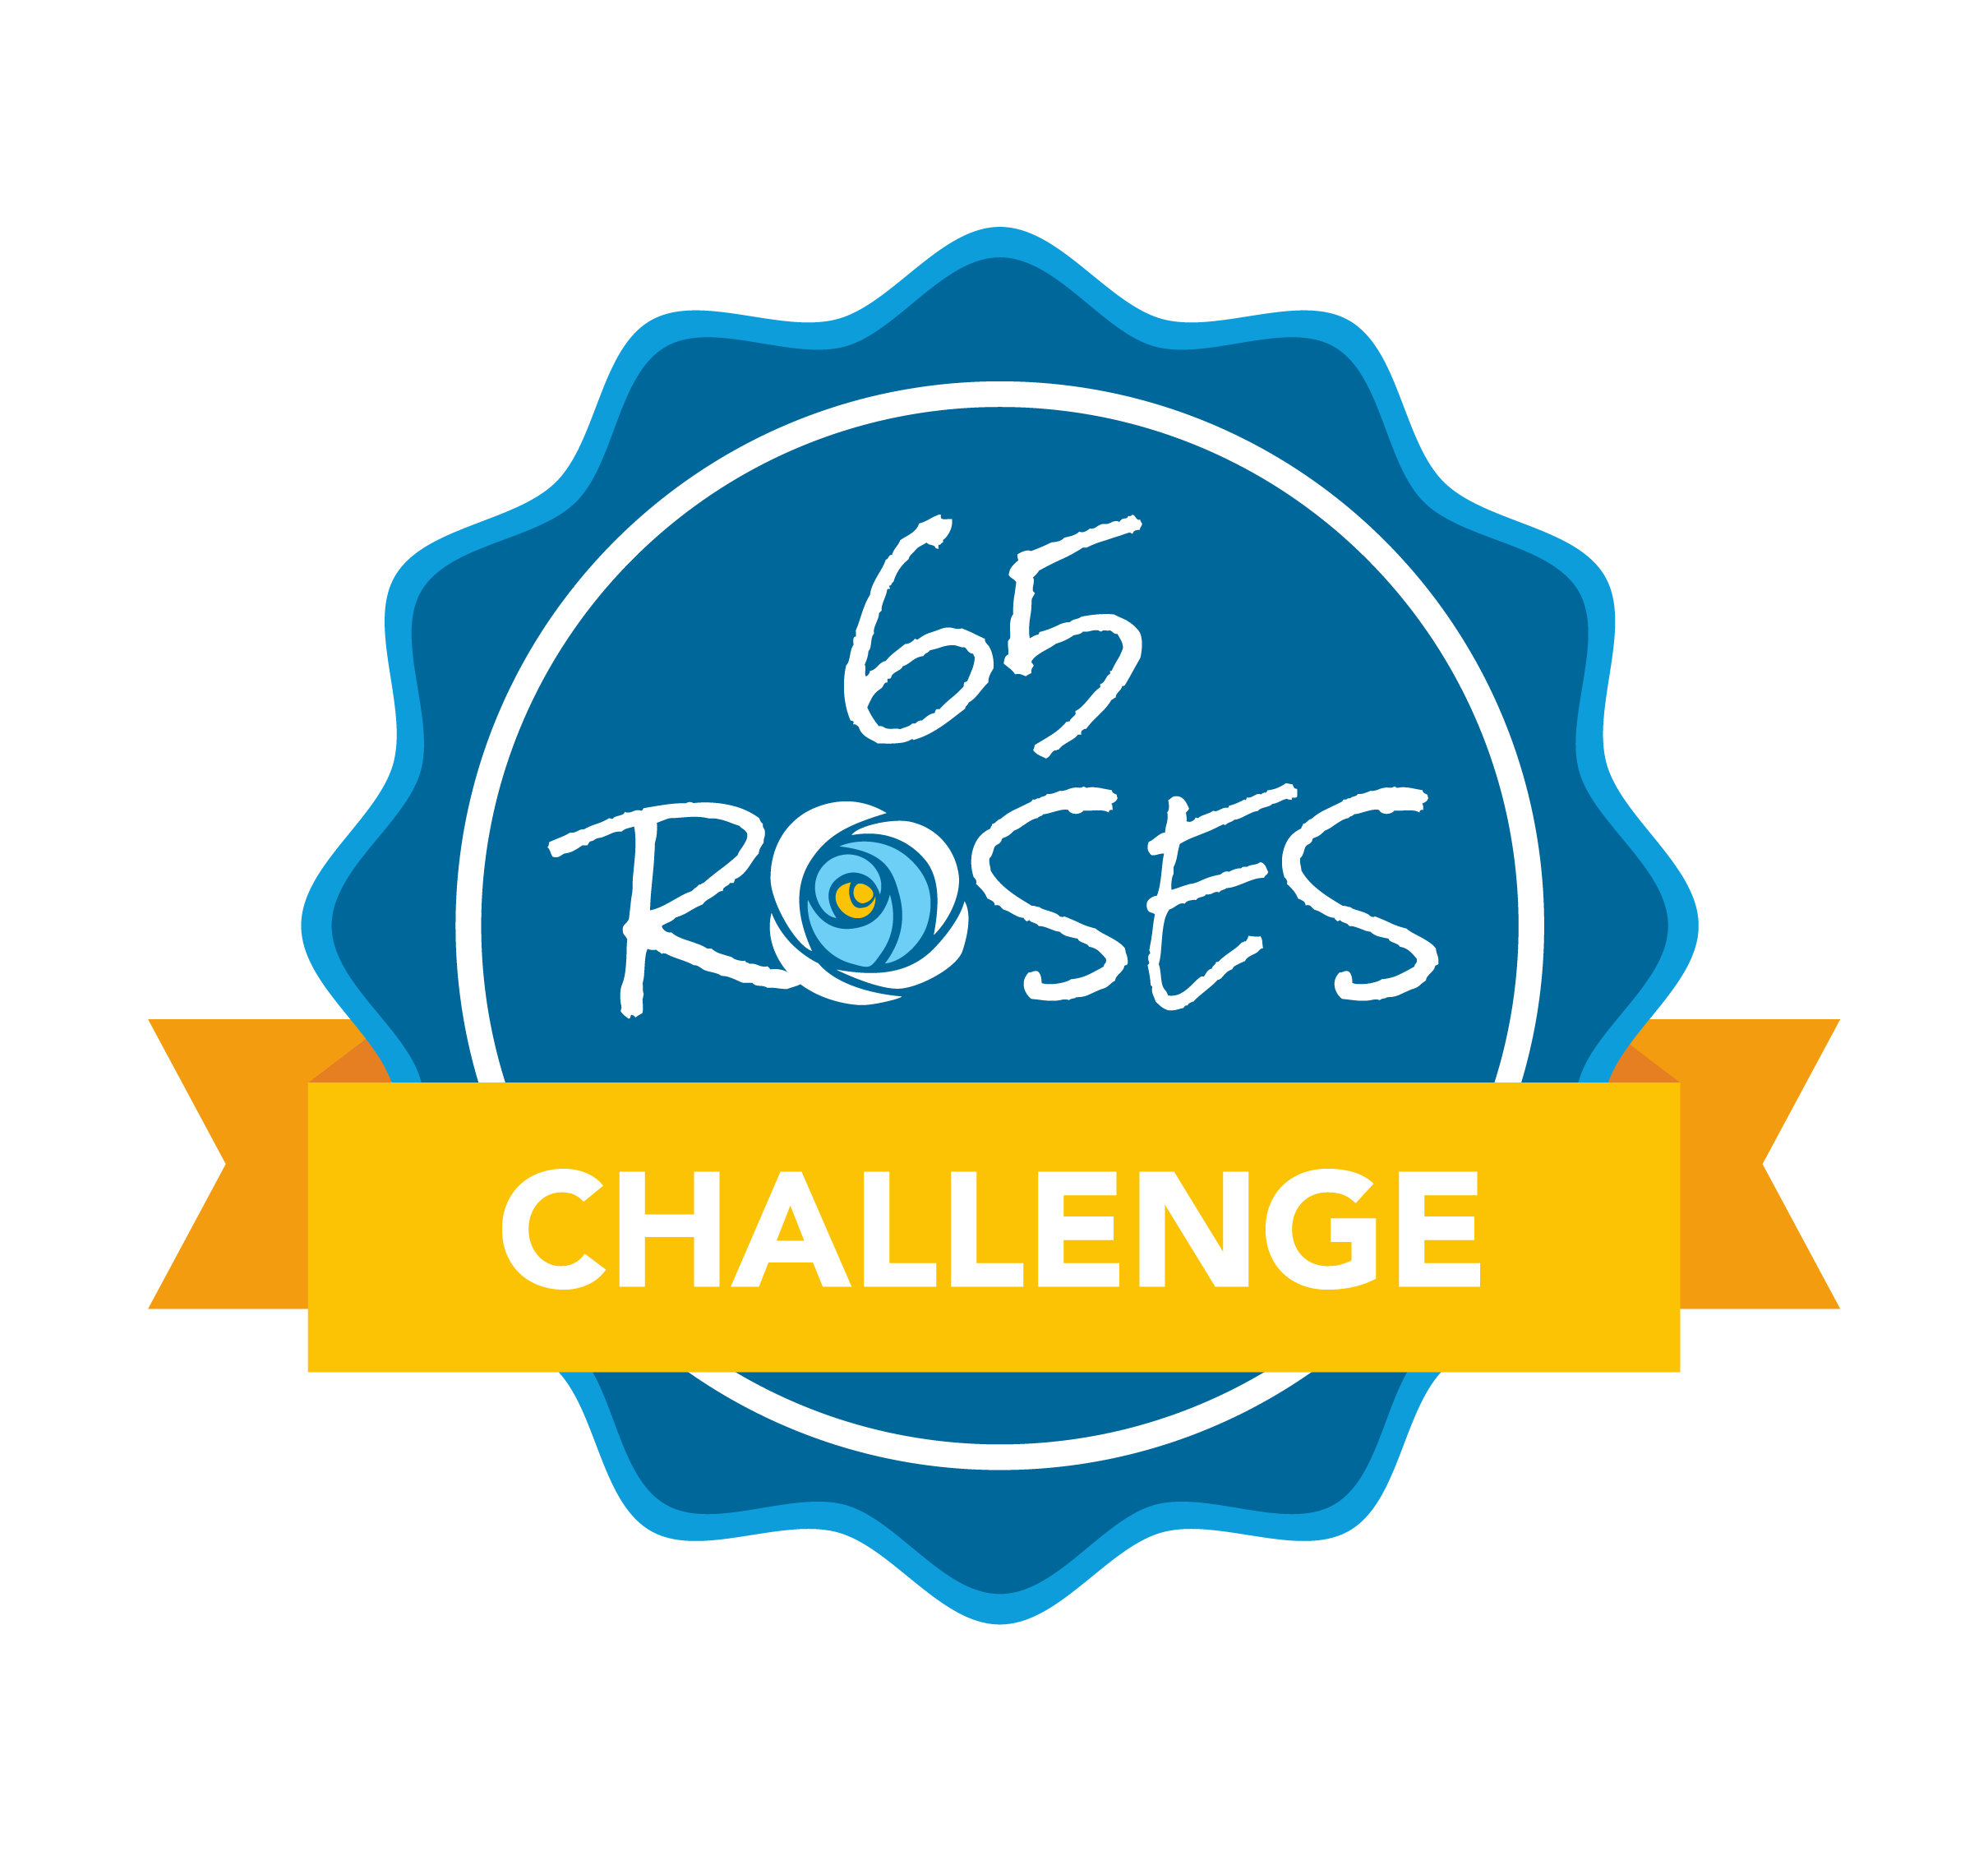 65-Roses-Challenge Image.png